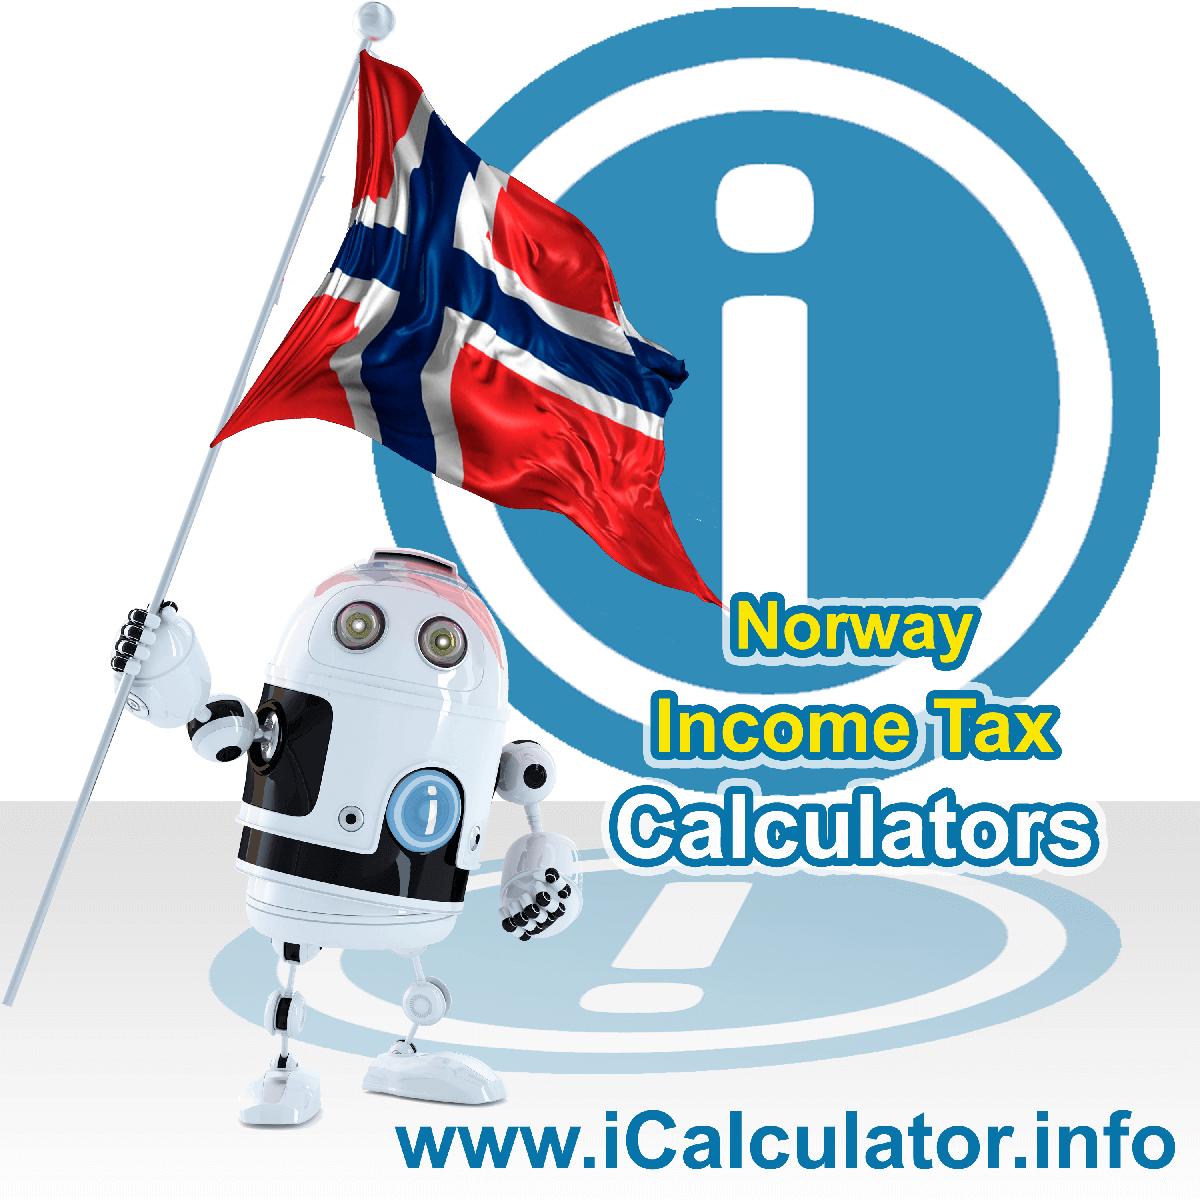 Norway Income Tax Calculator. This image shows a new employer in Norway calculating the annual payroll costs based on multiple payroll payments in one year in Norway using the Norway income tax calculator to understand their payroll costs in Norway in 2021